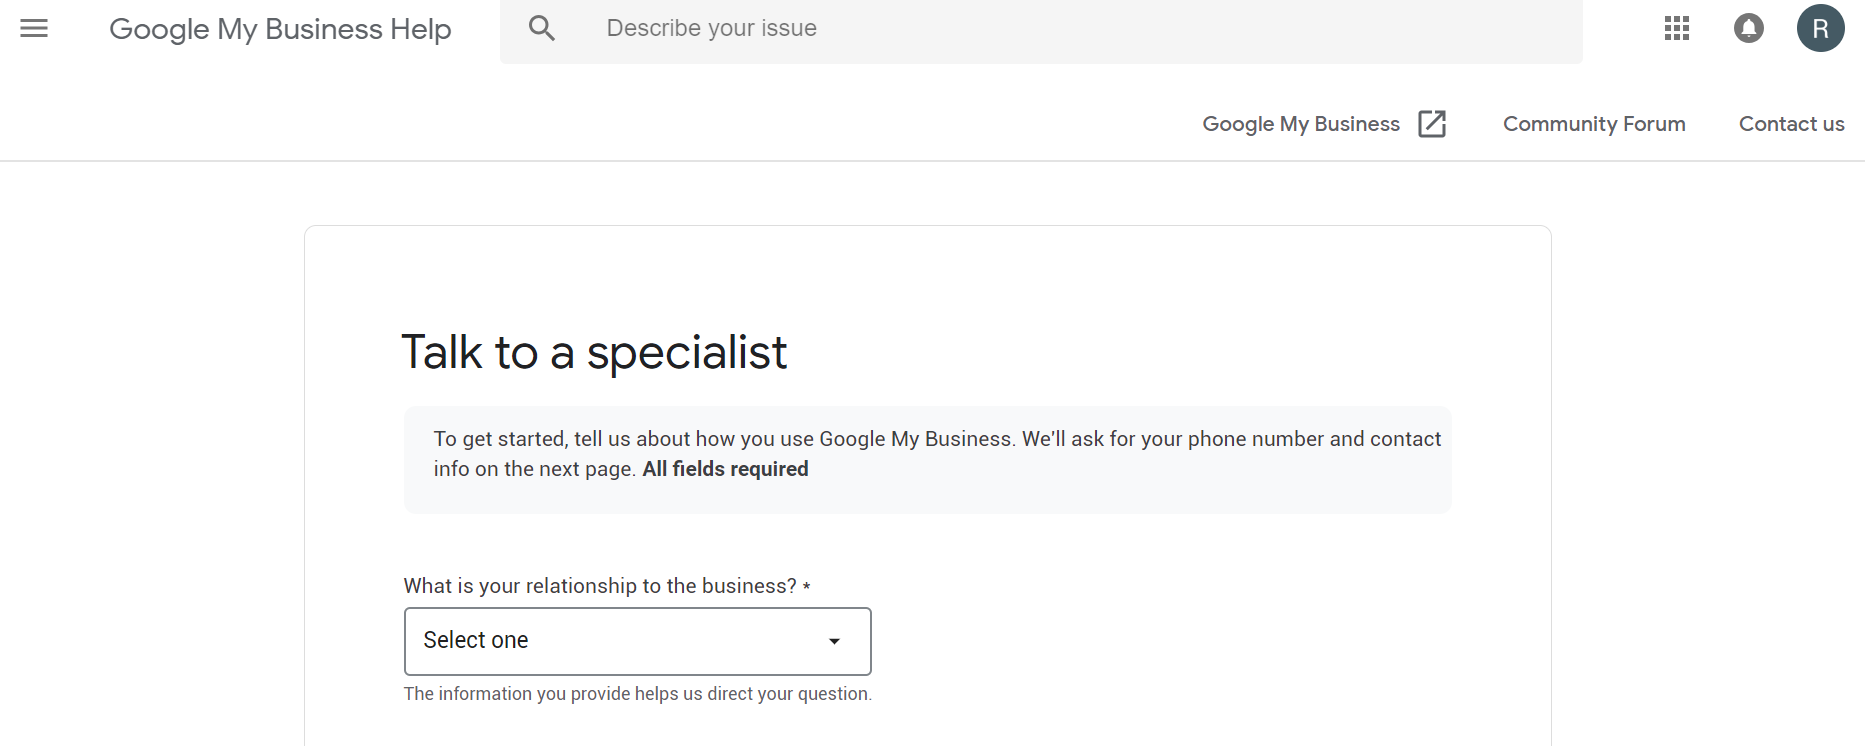 How to Get Google My Business Phone Support